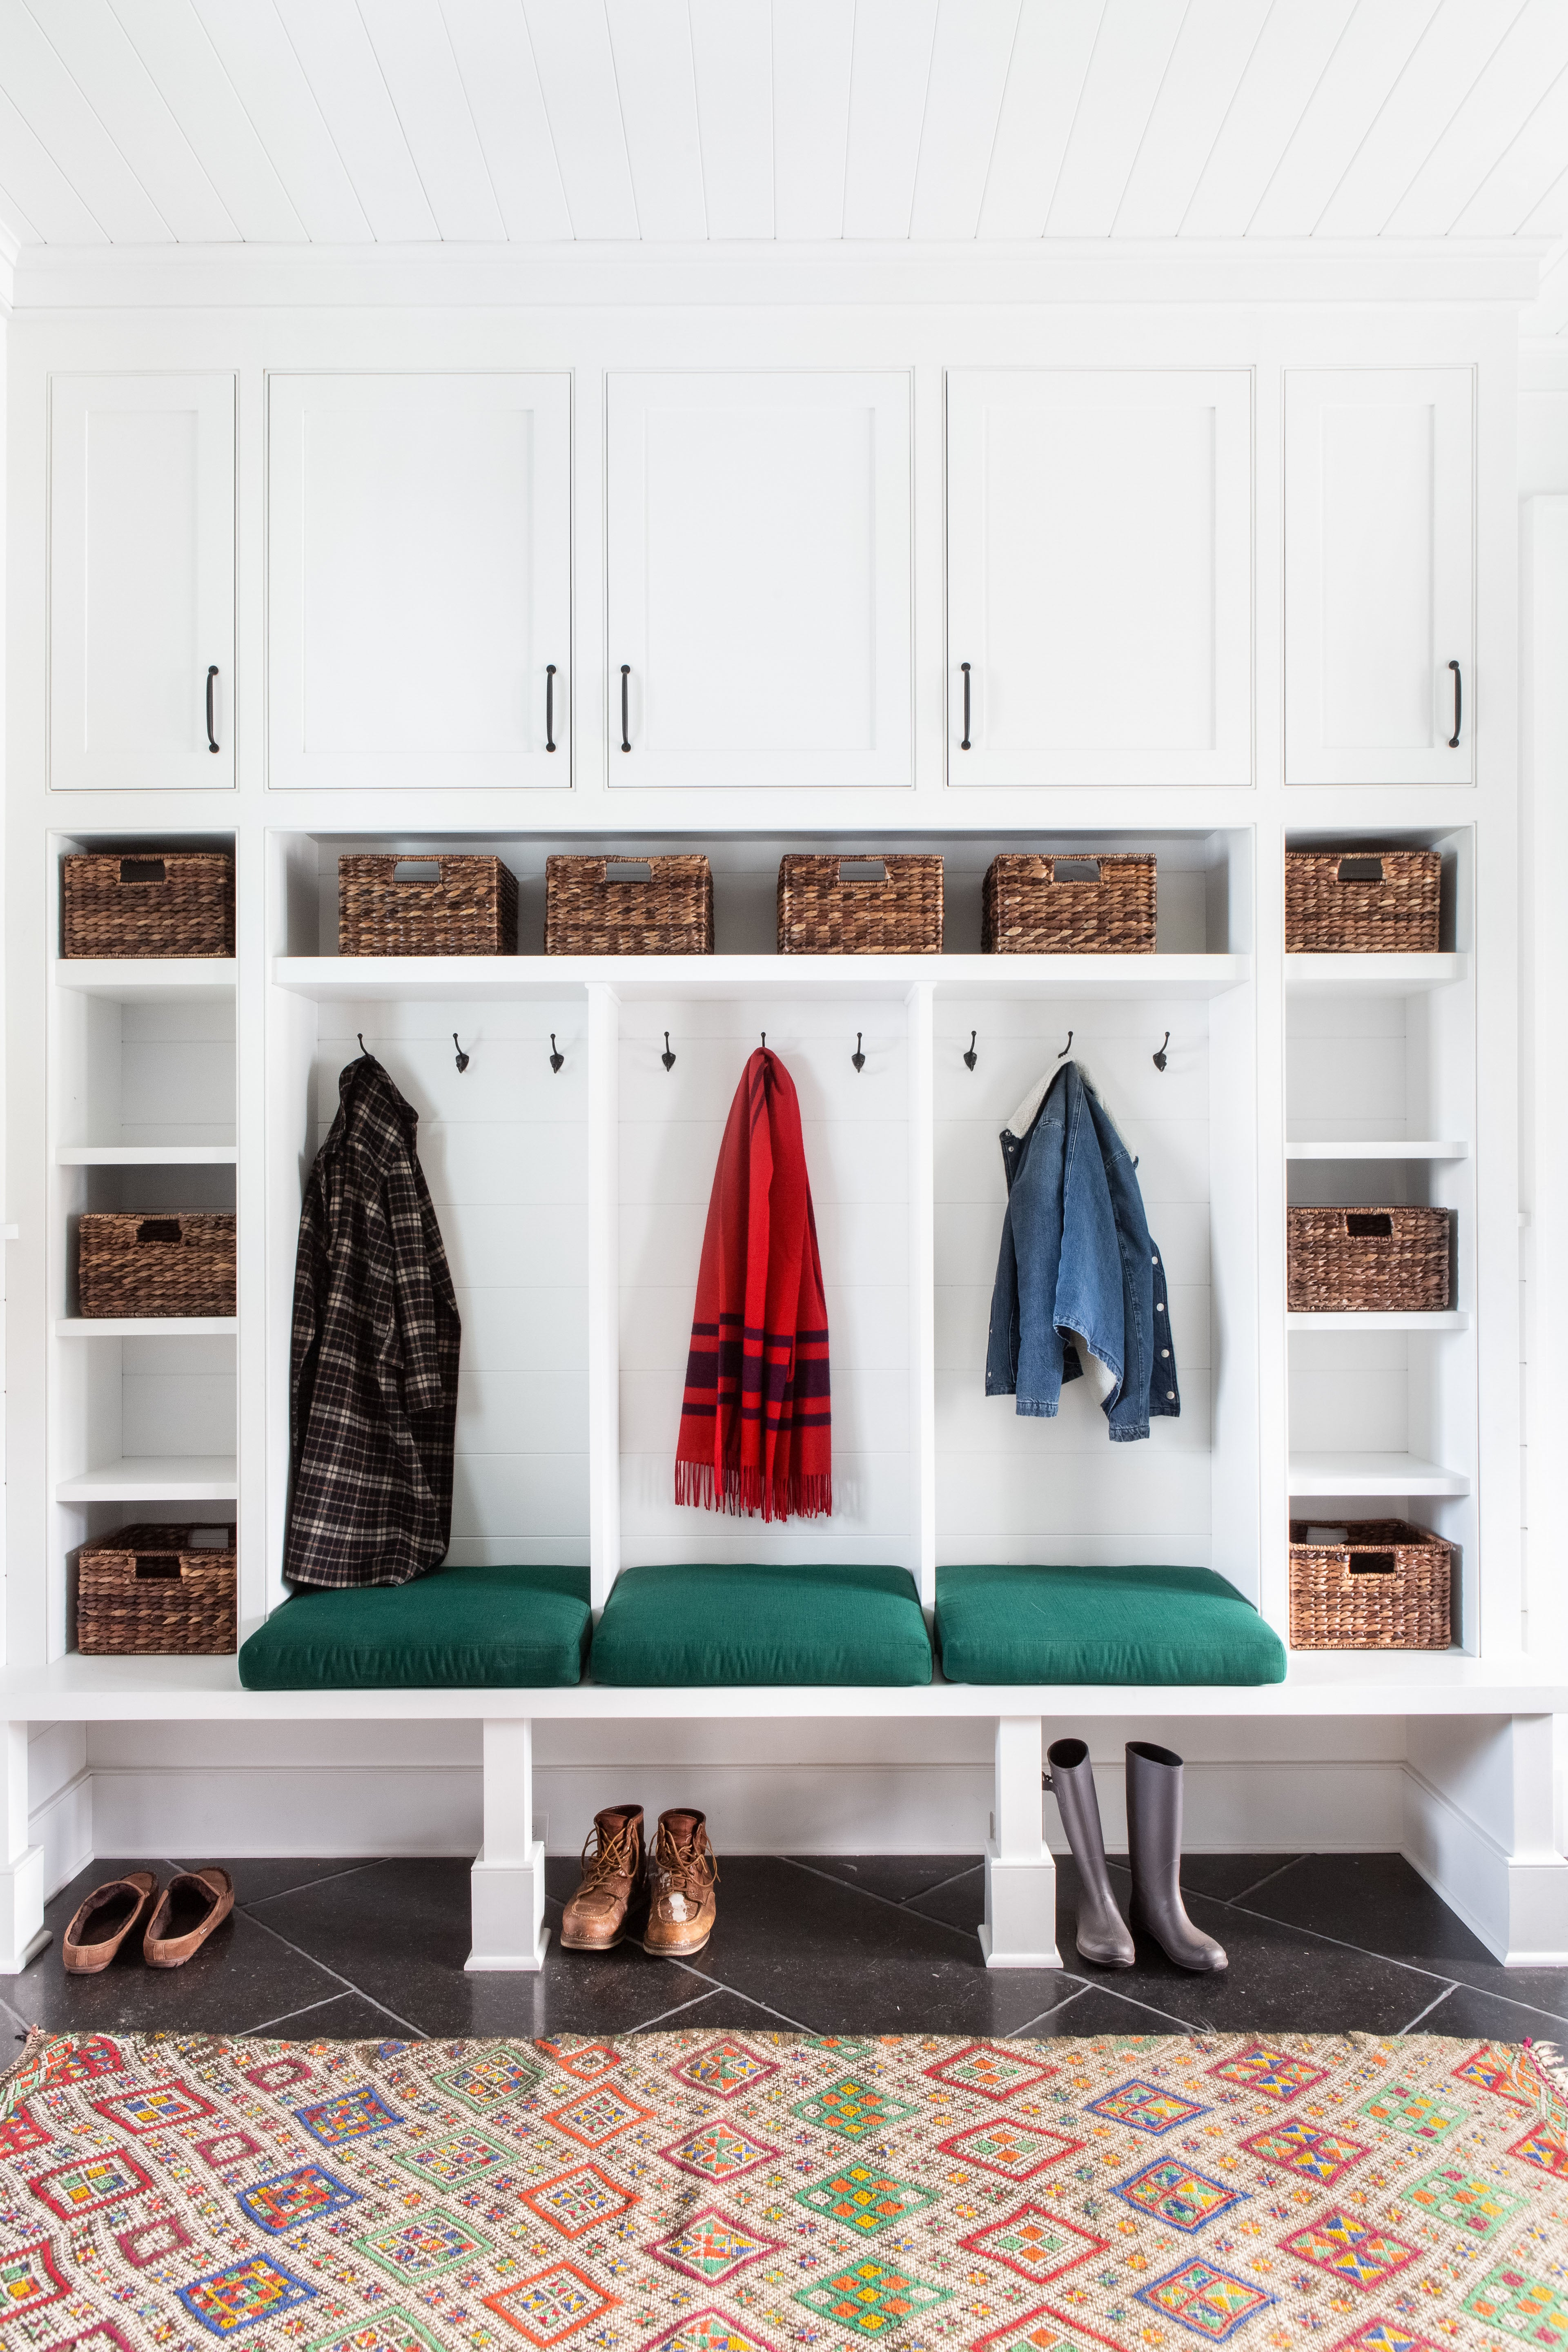 11. Upstate Farmhouse by Chango _ Co. – Mud Room Detail